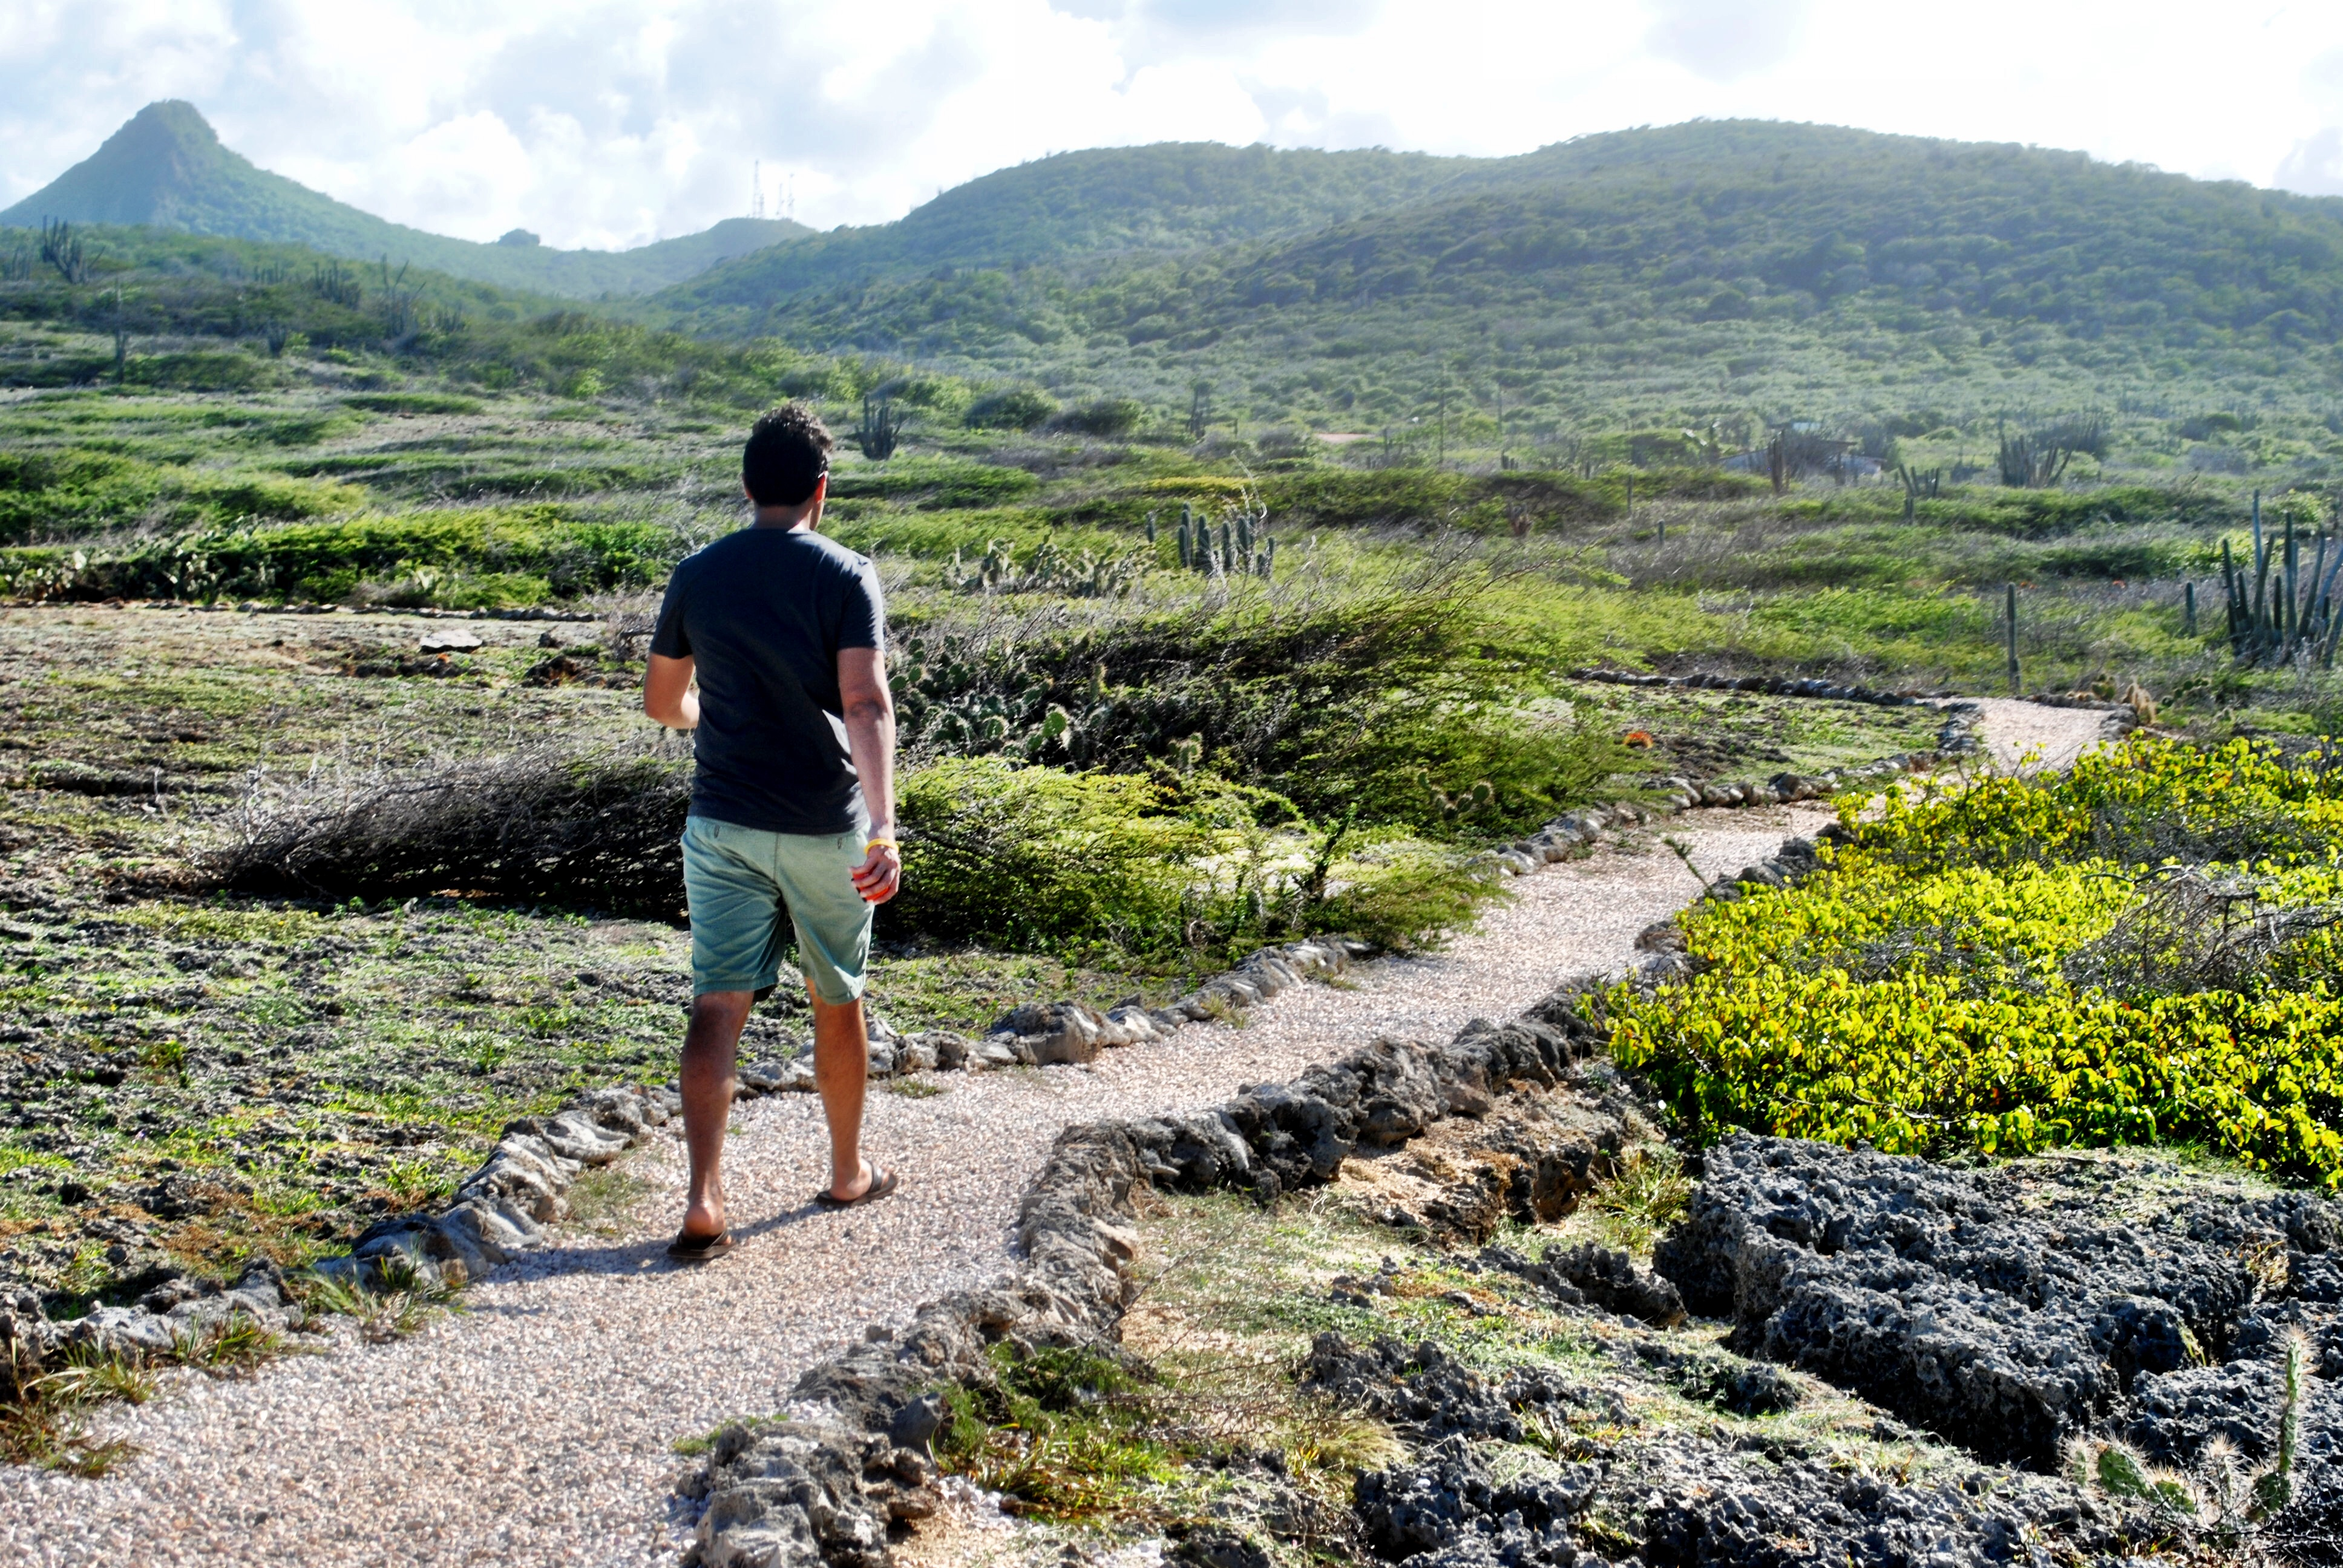 Shete Boka National Park in Curacao